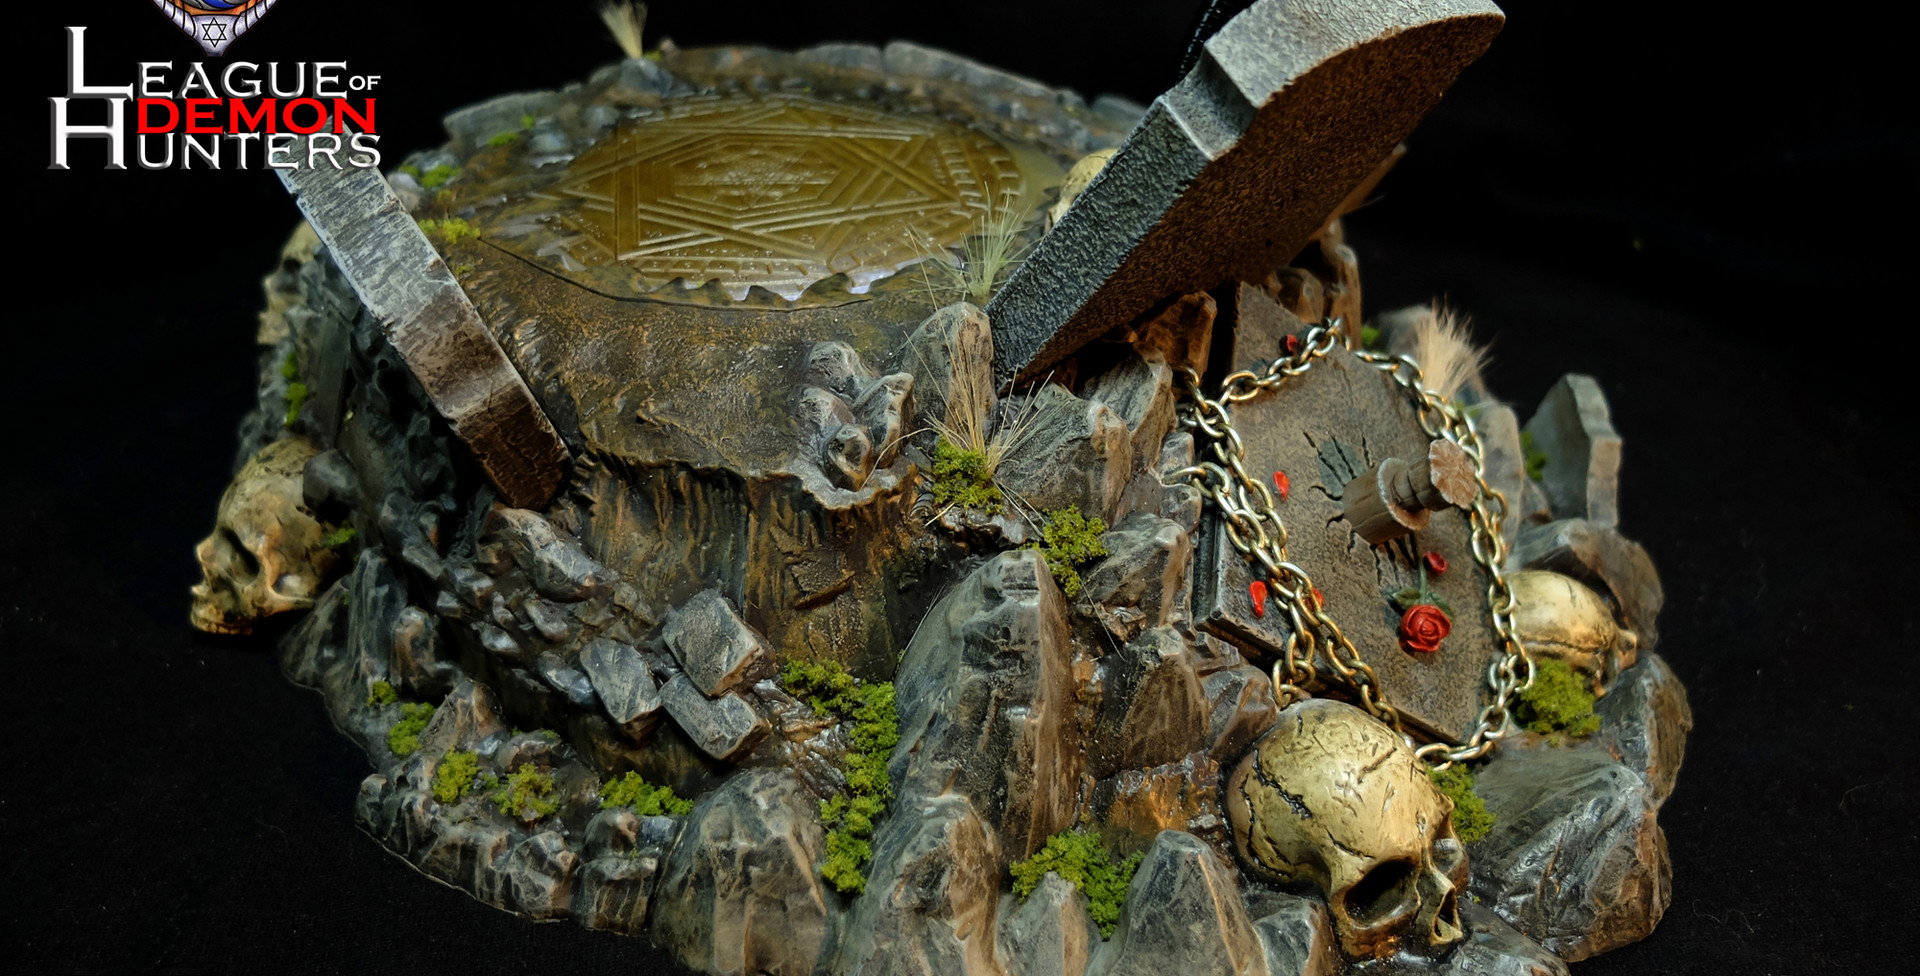 Tomb of Dracula Diorama Base  League of Demon Hunters I Paul the Holy Disciple  Original Design by GATE TOYS